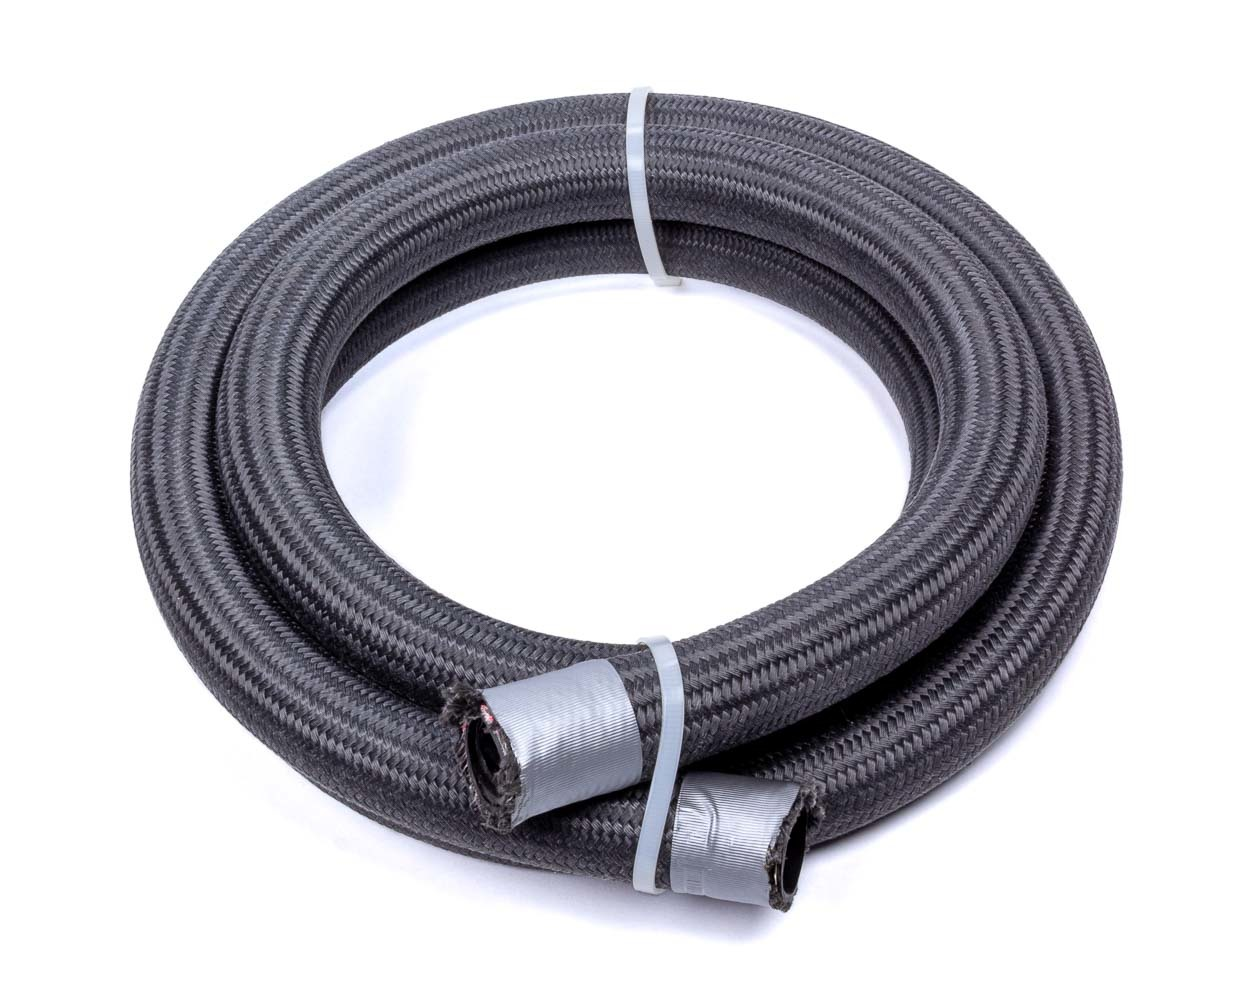 Fragola 2701512 Hose, Race-Rite, 12 AN, 15 ft, Braided Fire Retardant Fabric, PTFE, Black, Each